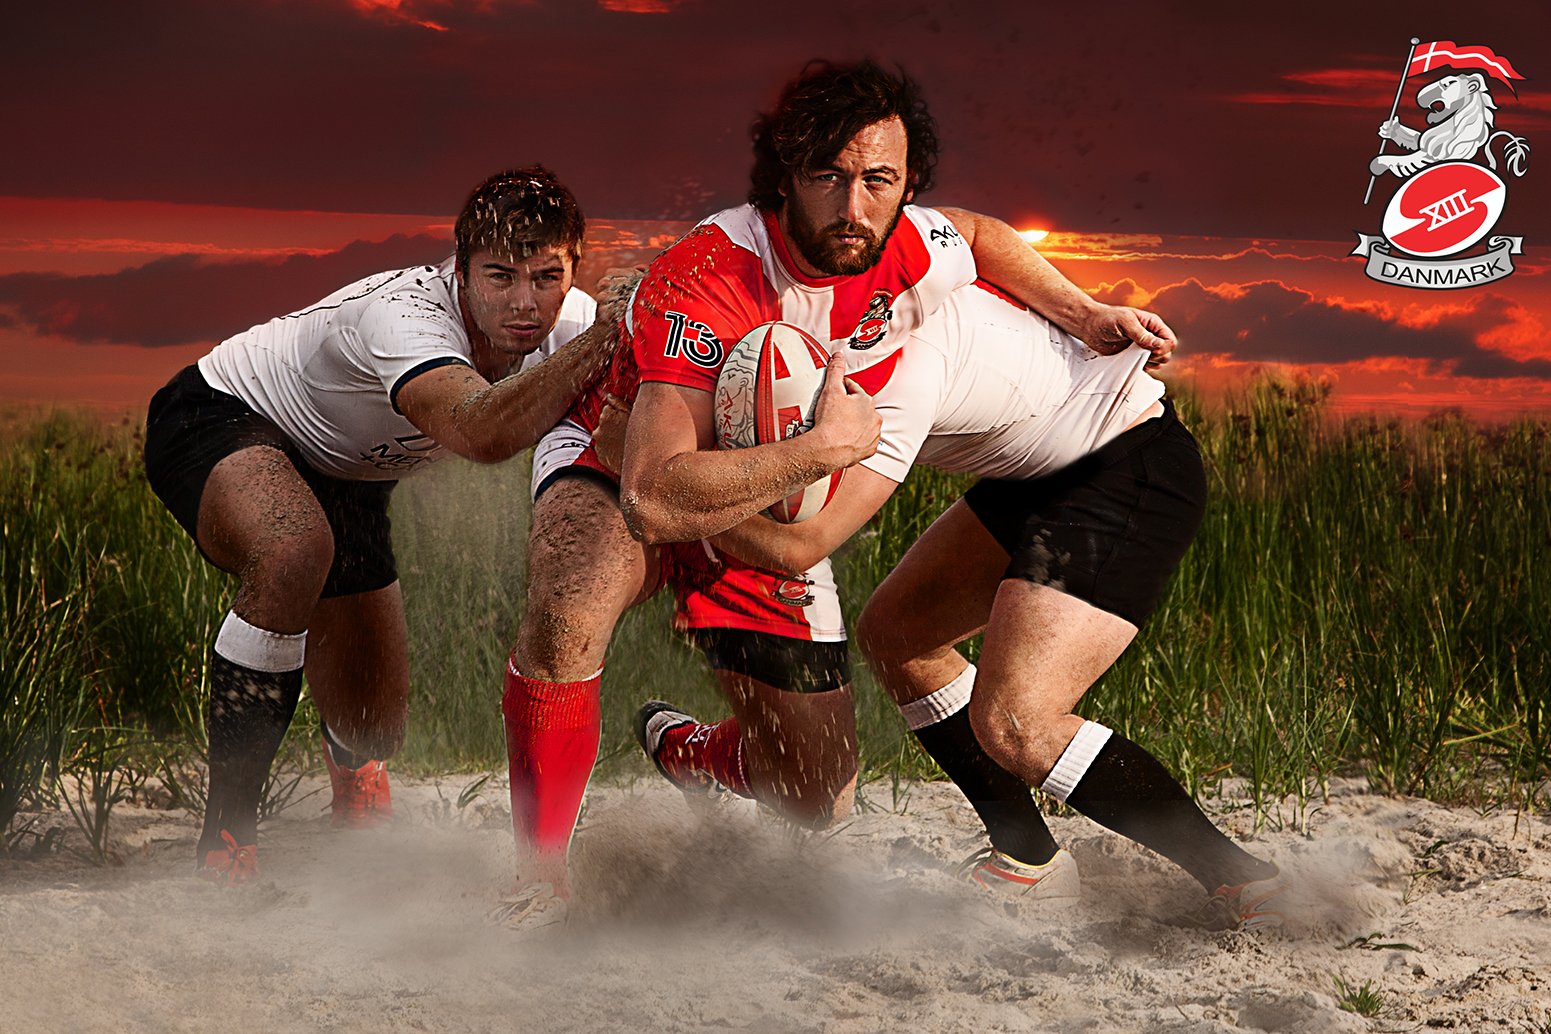 Advertising Rugby League Denmark